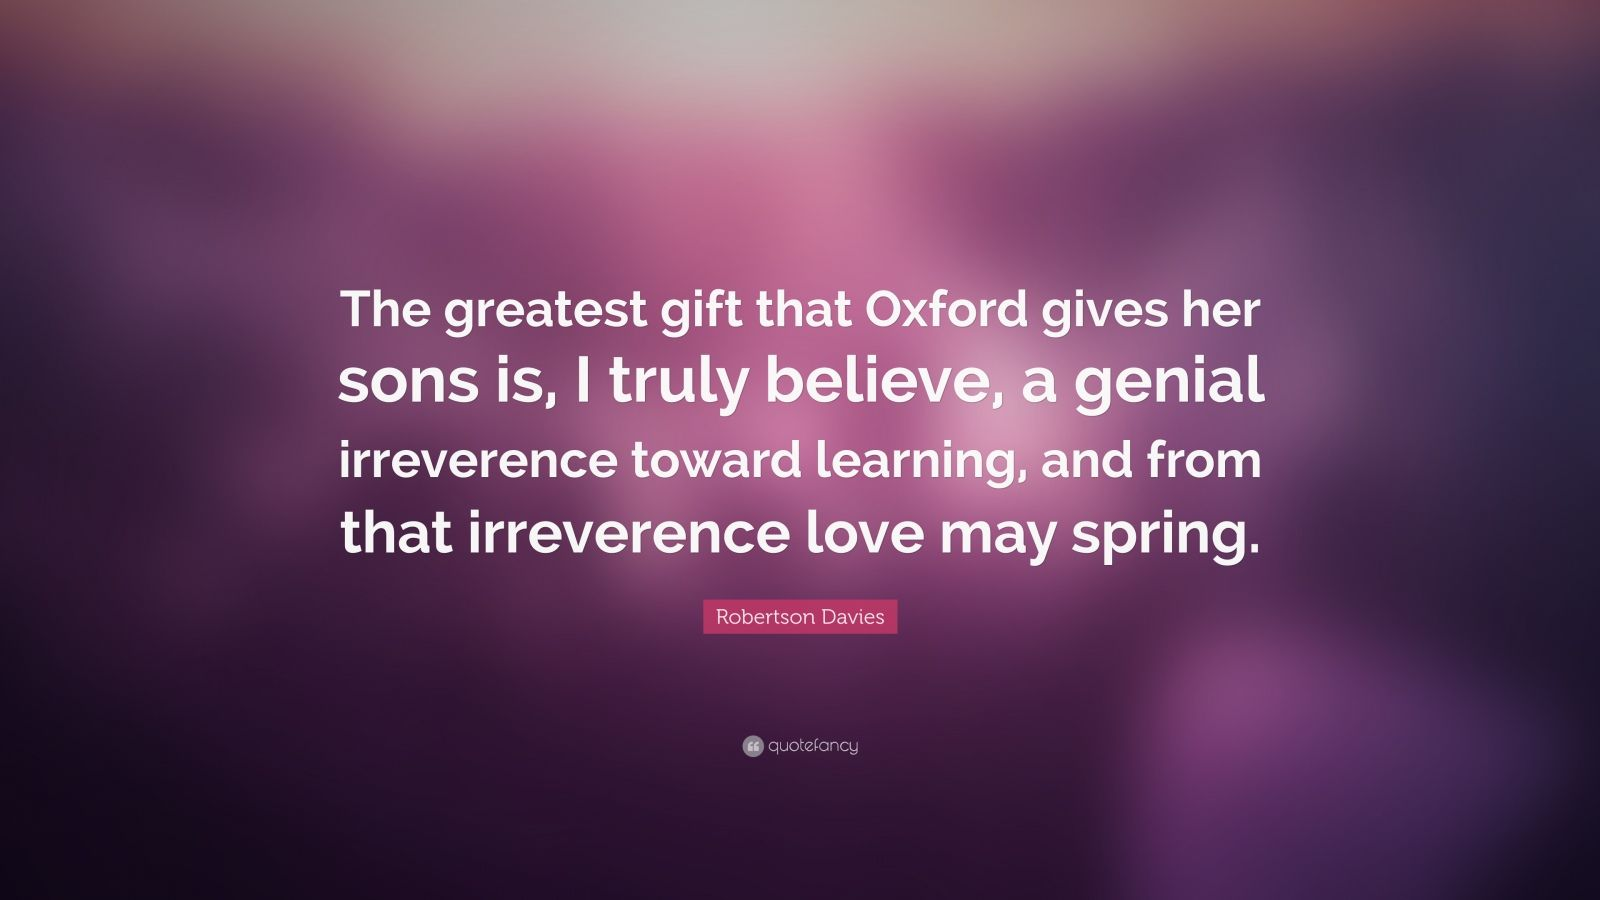 """Robertson Davies Quote: """"The greatest gift that Oxford gives her sons is, I truly believe, a genial irreverence toward learning, and from that irreverence love may spring."""""""